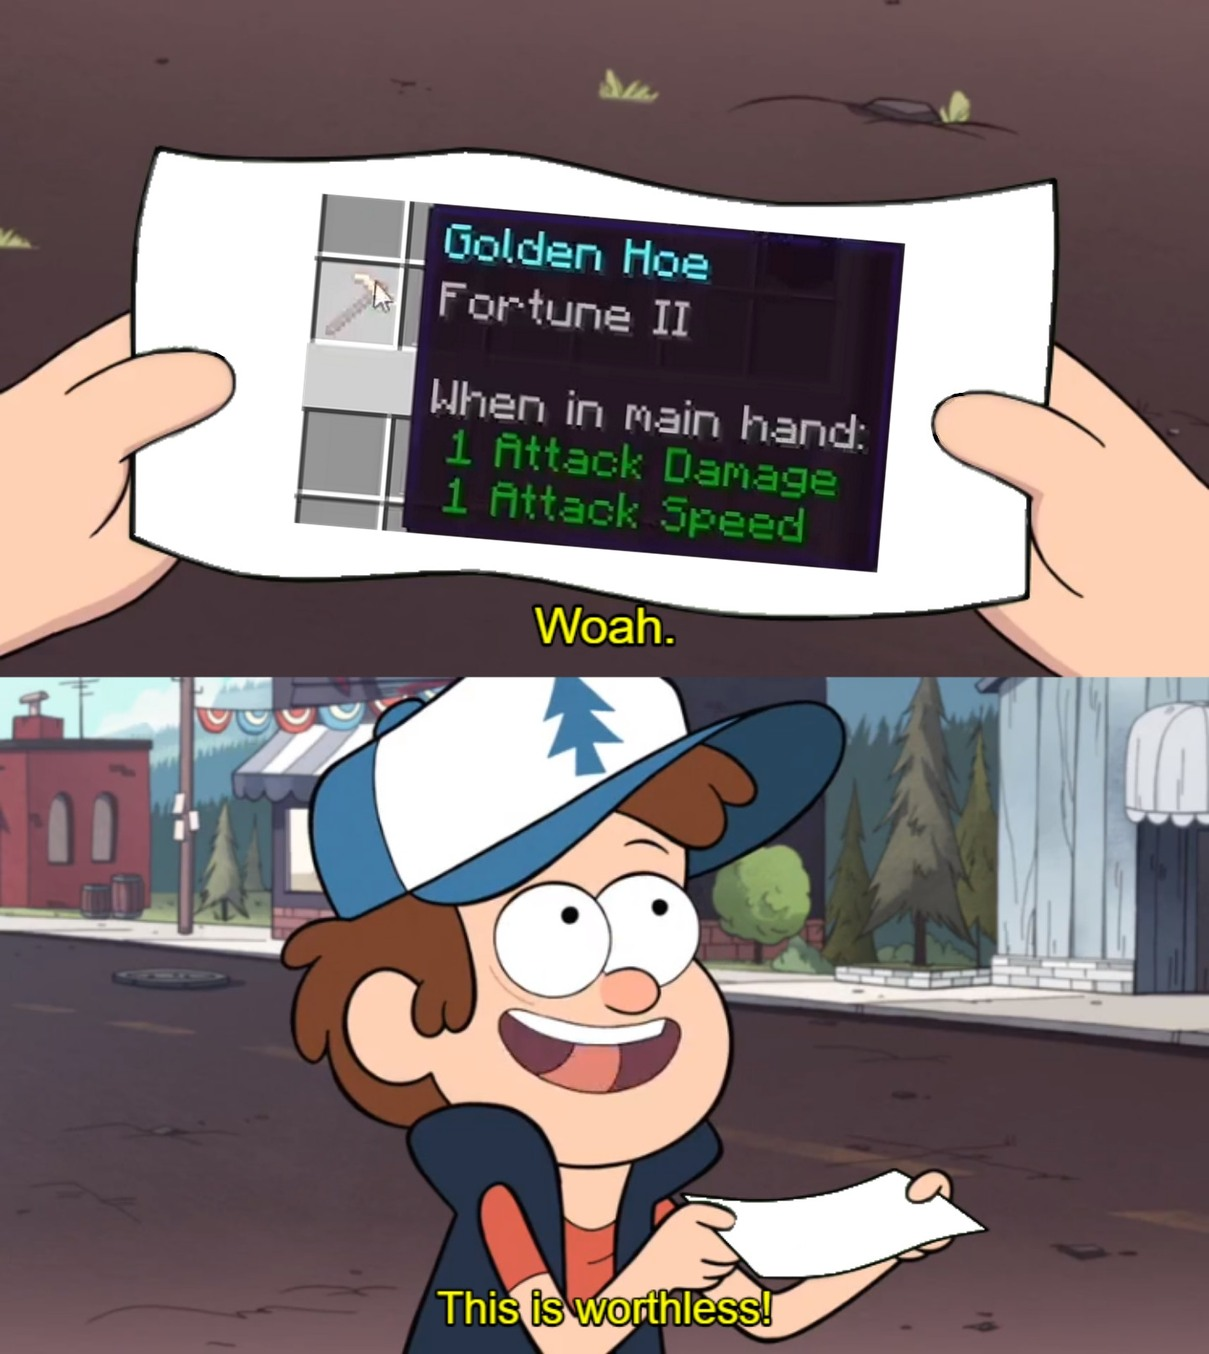 Woah this is worthless! Golden Fortune Hoe - meme